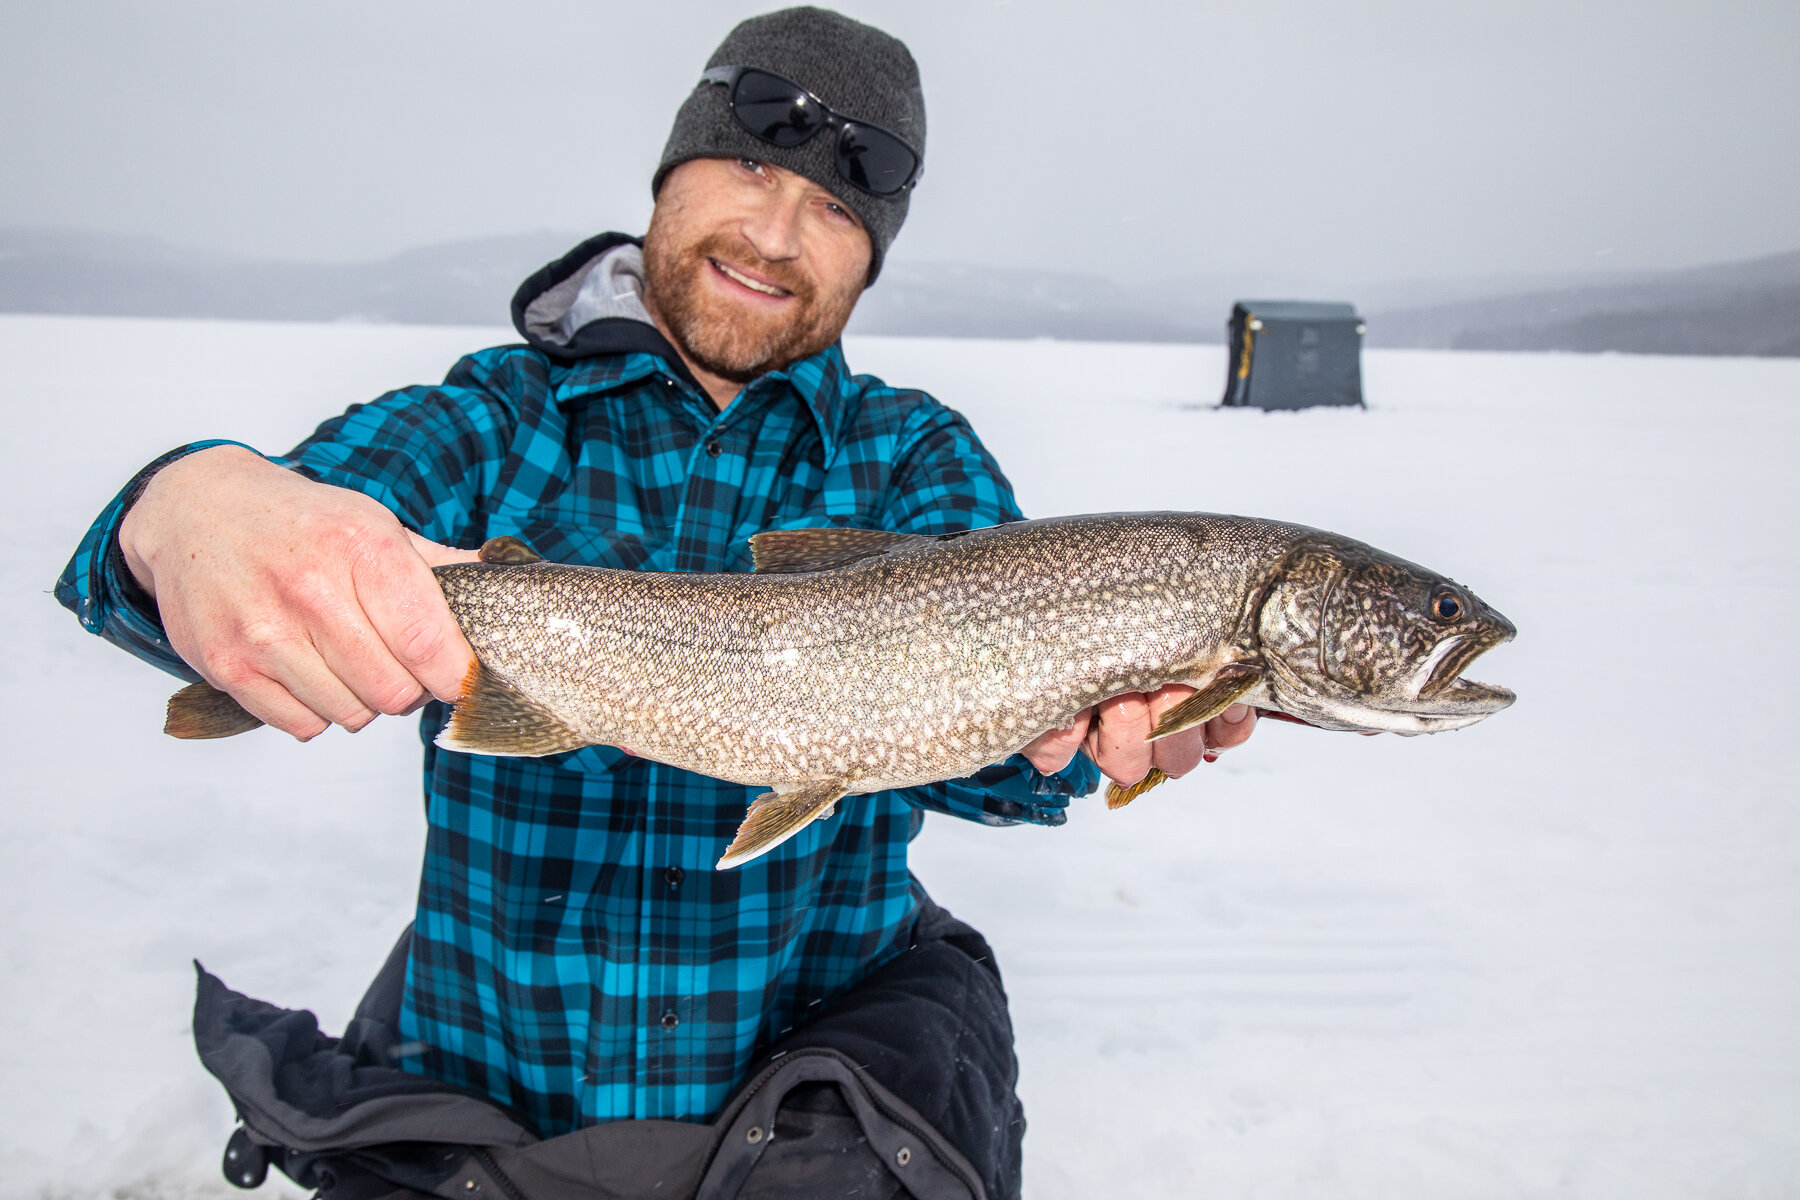 Drilling for Silver - ICE FISHING FOR LAKE TROUT AT SNOWSHOE CAMP RESORT